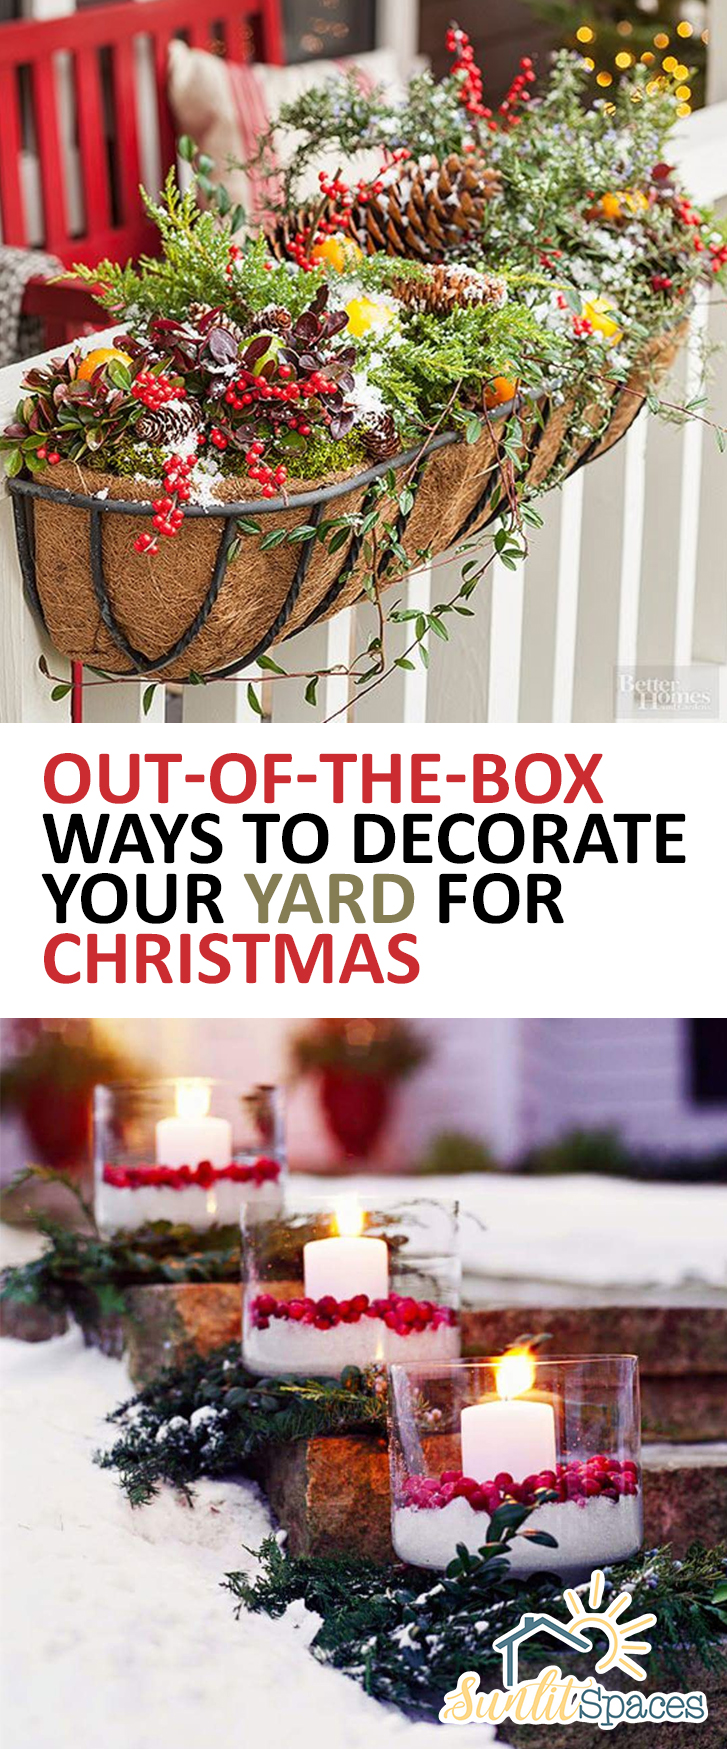 OutoftheBox Ways to Decorate Your Yard for Christmas